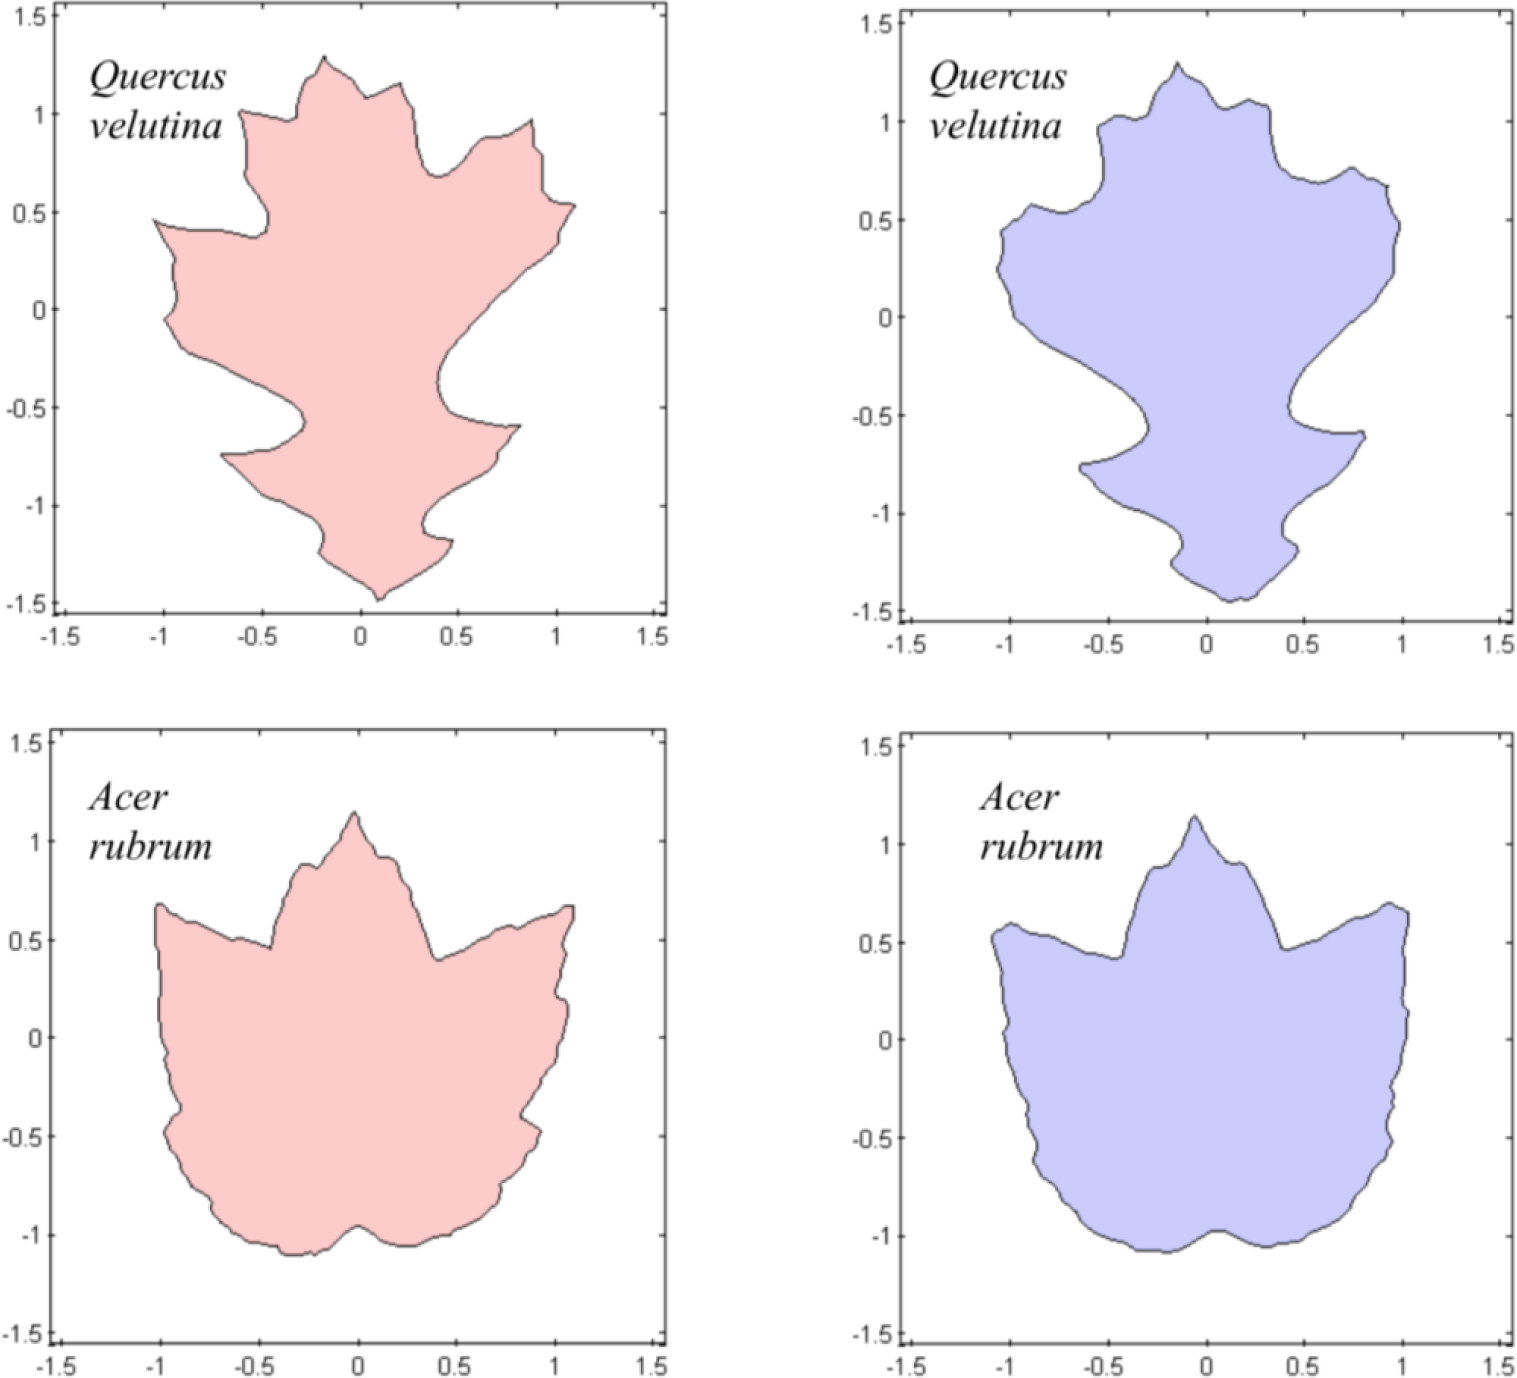 download heavy-tailed distributions and robustness